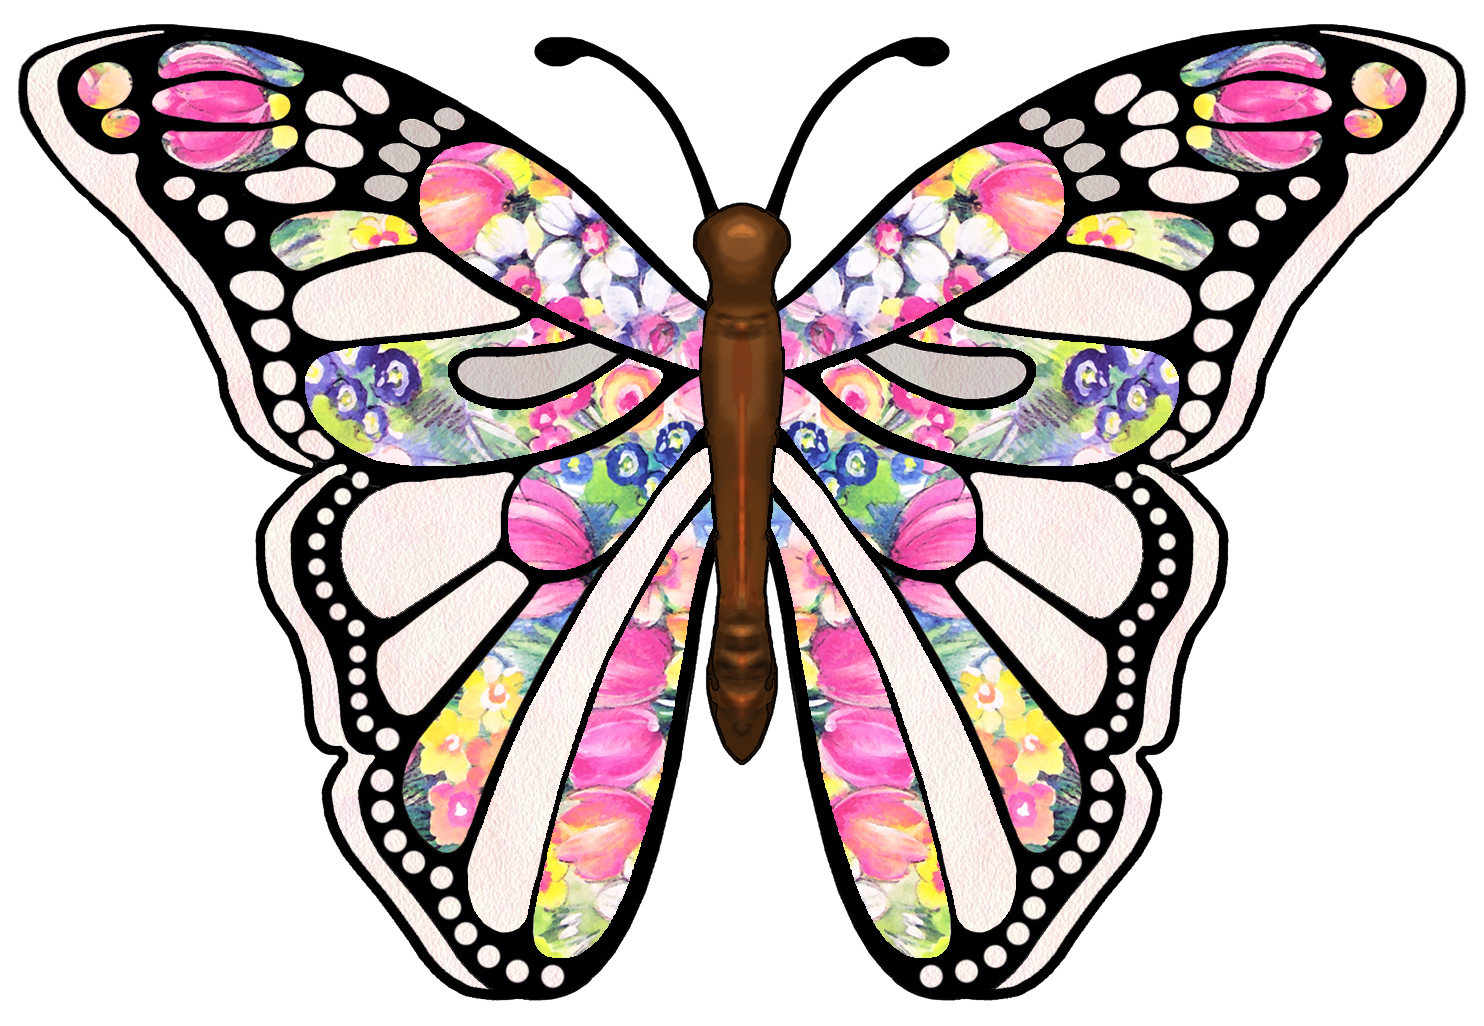 77 images of Pictures Of Butterflies . You can use these free cliparts ...